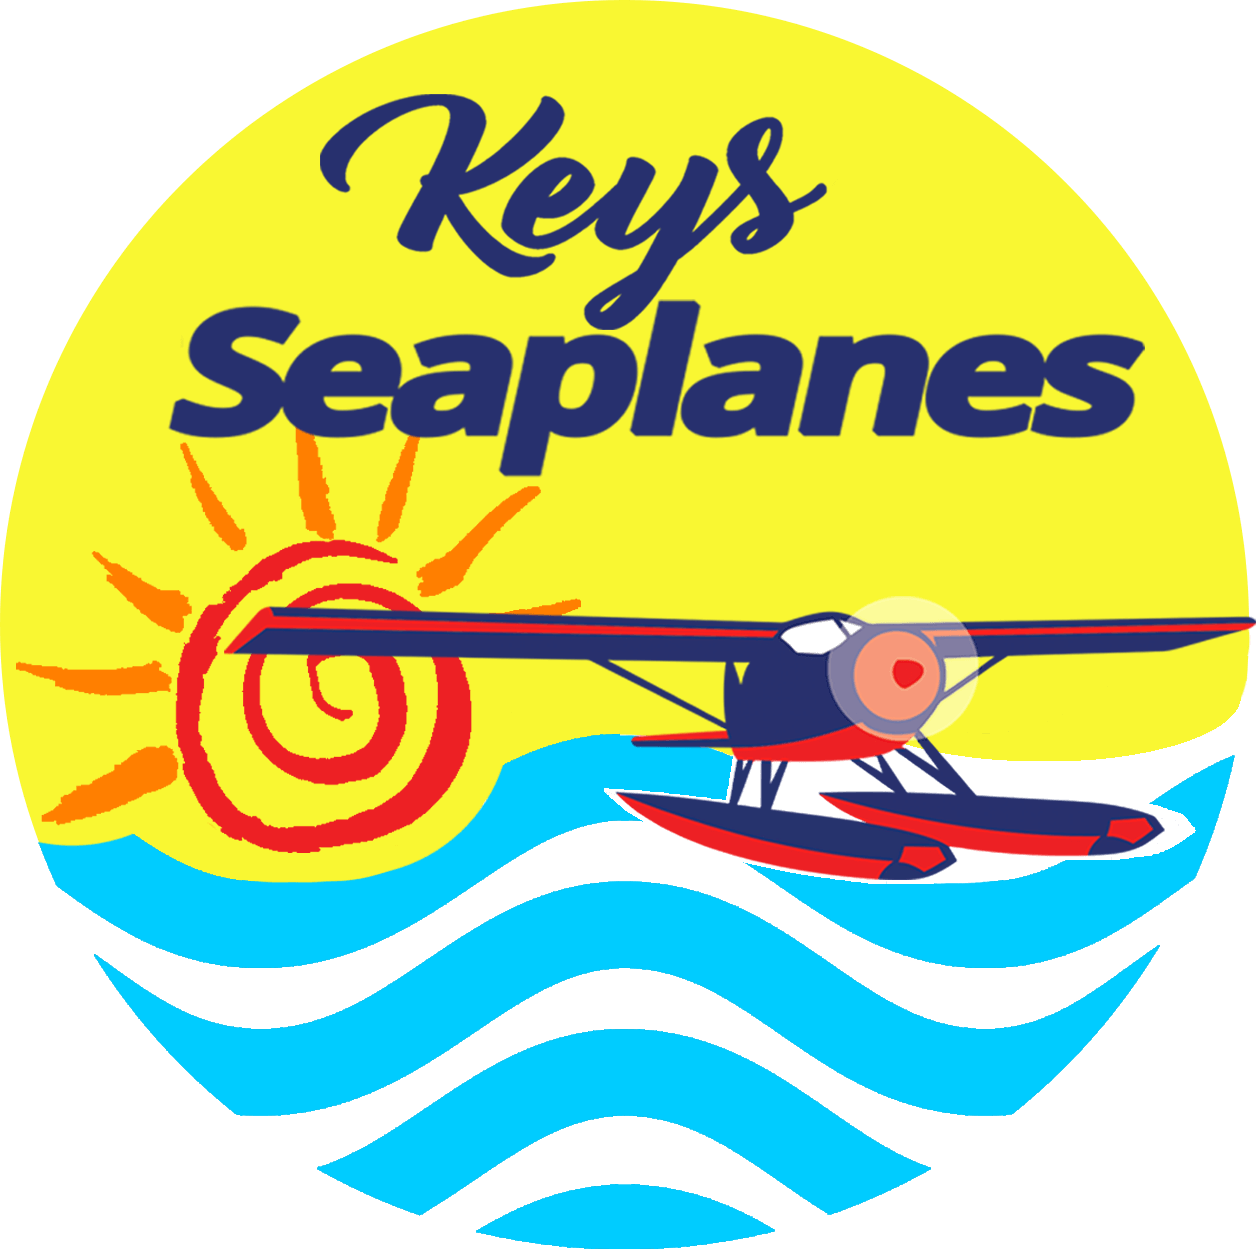 Lunch clipart let's do lunch. Key west charter seaplanes